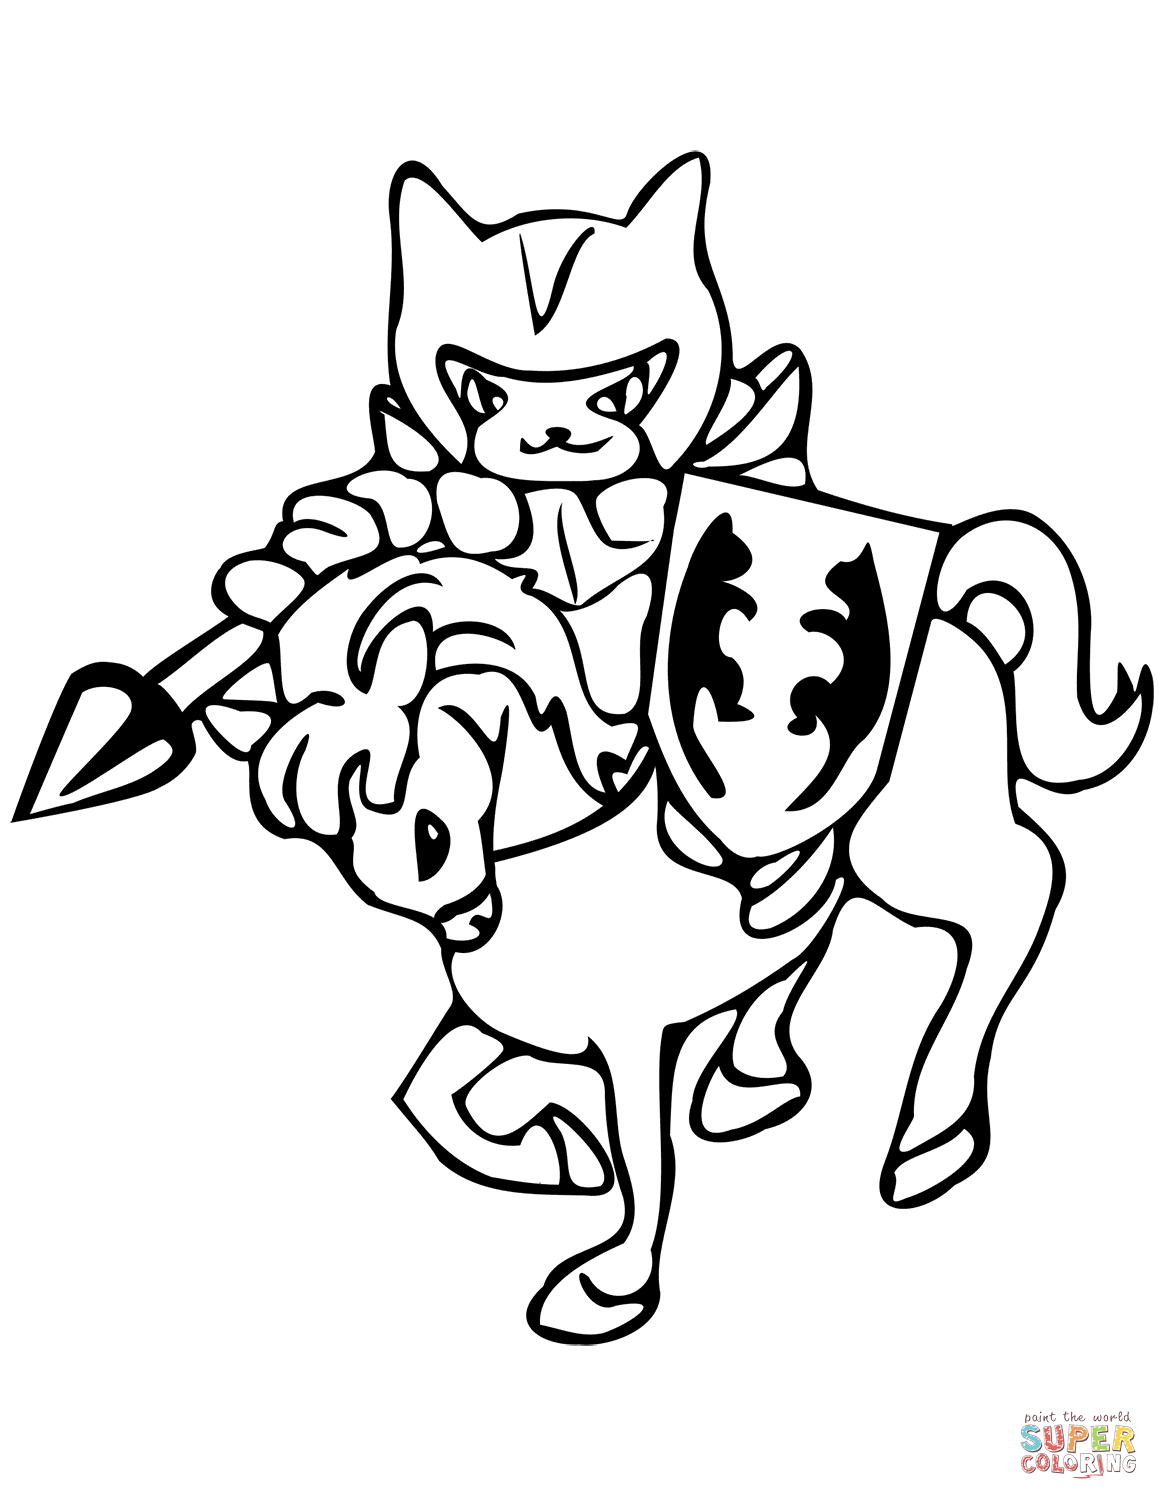 Cat The Knight Coloring Page